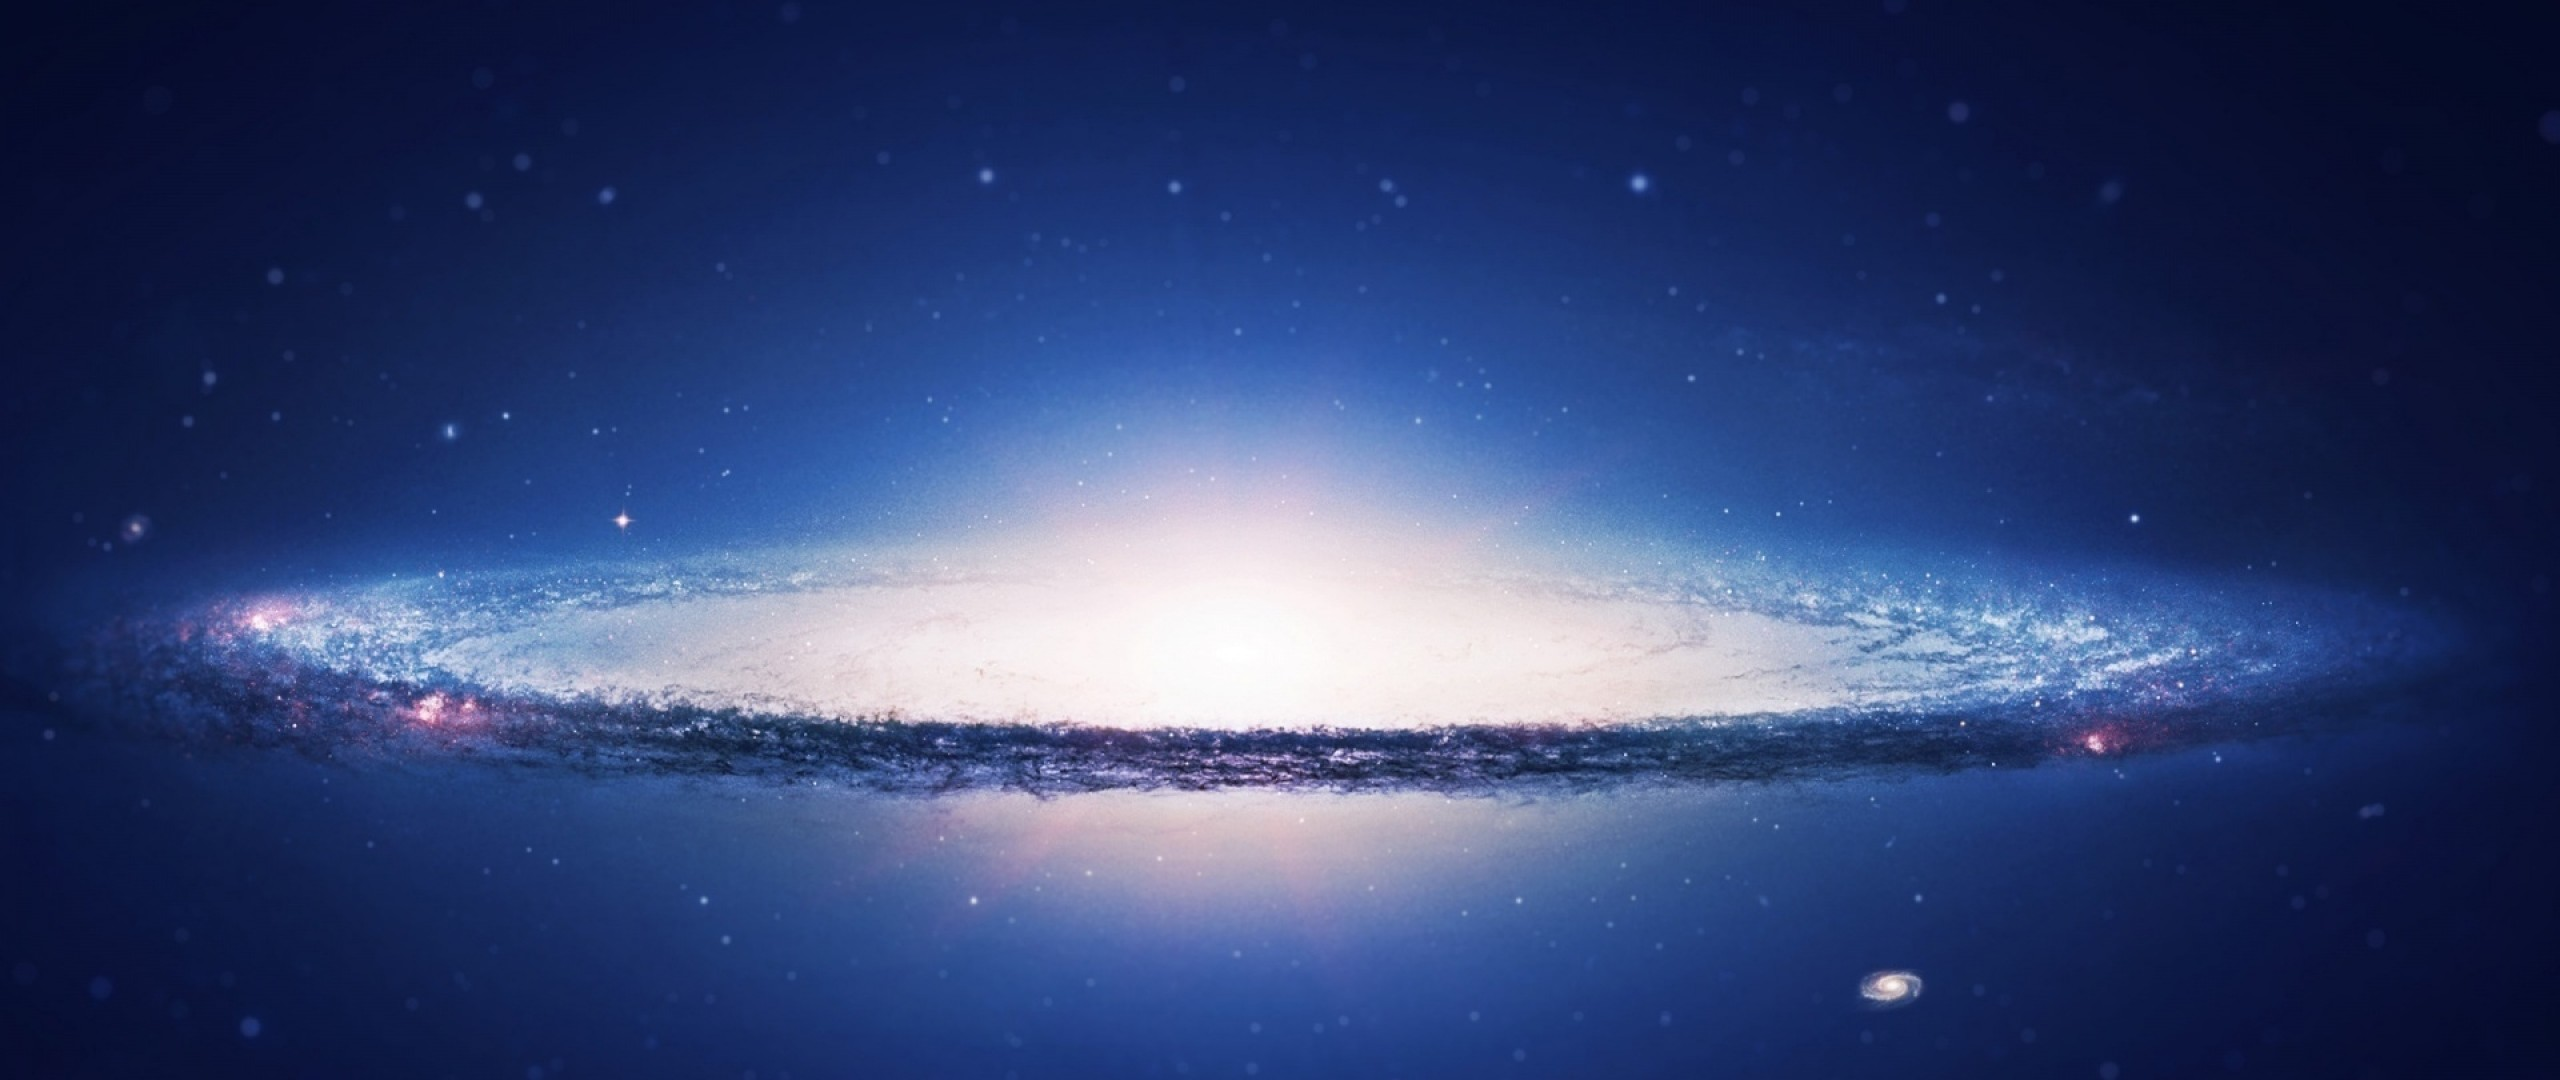 2560 X 1080 Wallpapers (89+ Background Pictures